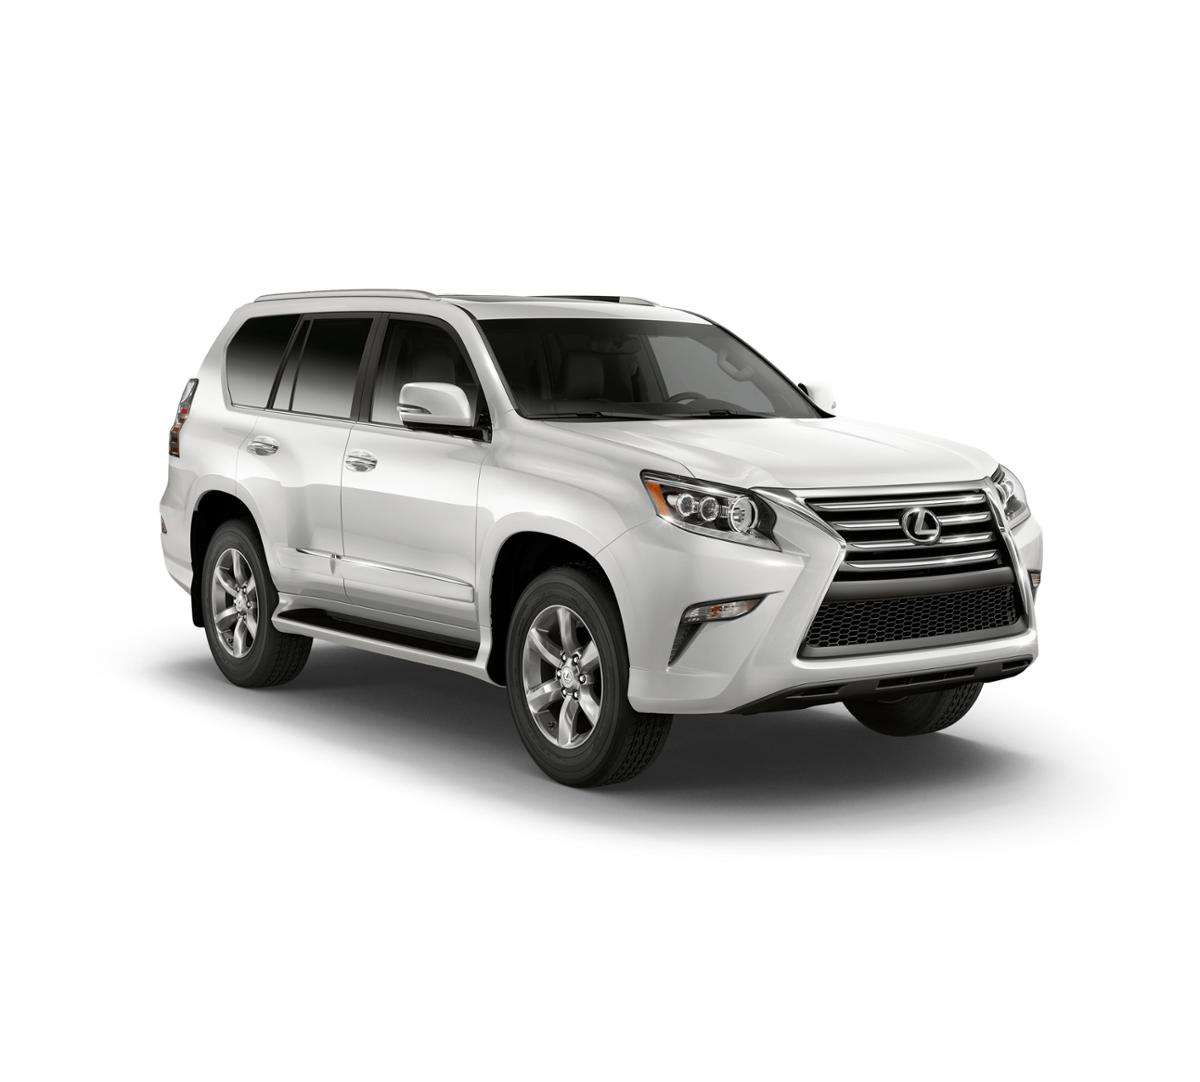 2017 lexus gx 460 new suv for sale in east haven jtjbm7fx5h5169906. Black Bedroom Furniture Sets. Home Design Ideas